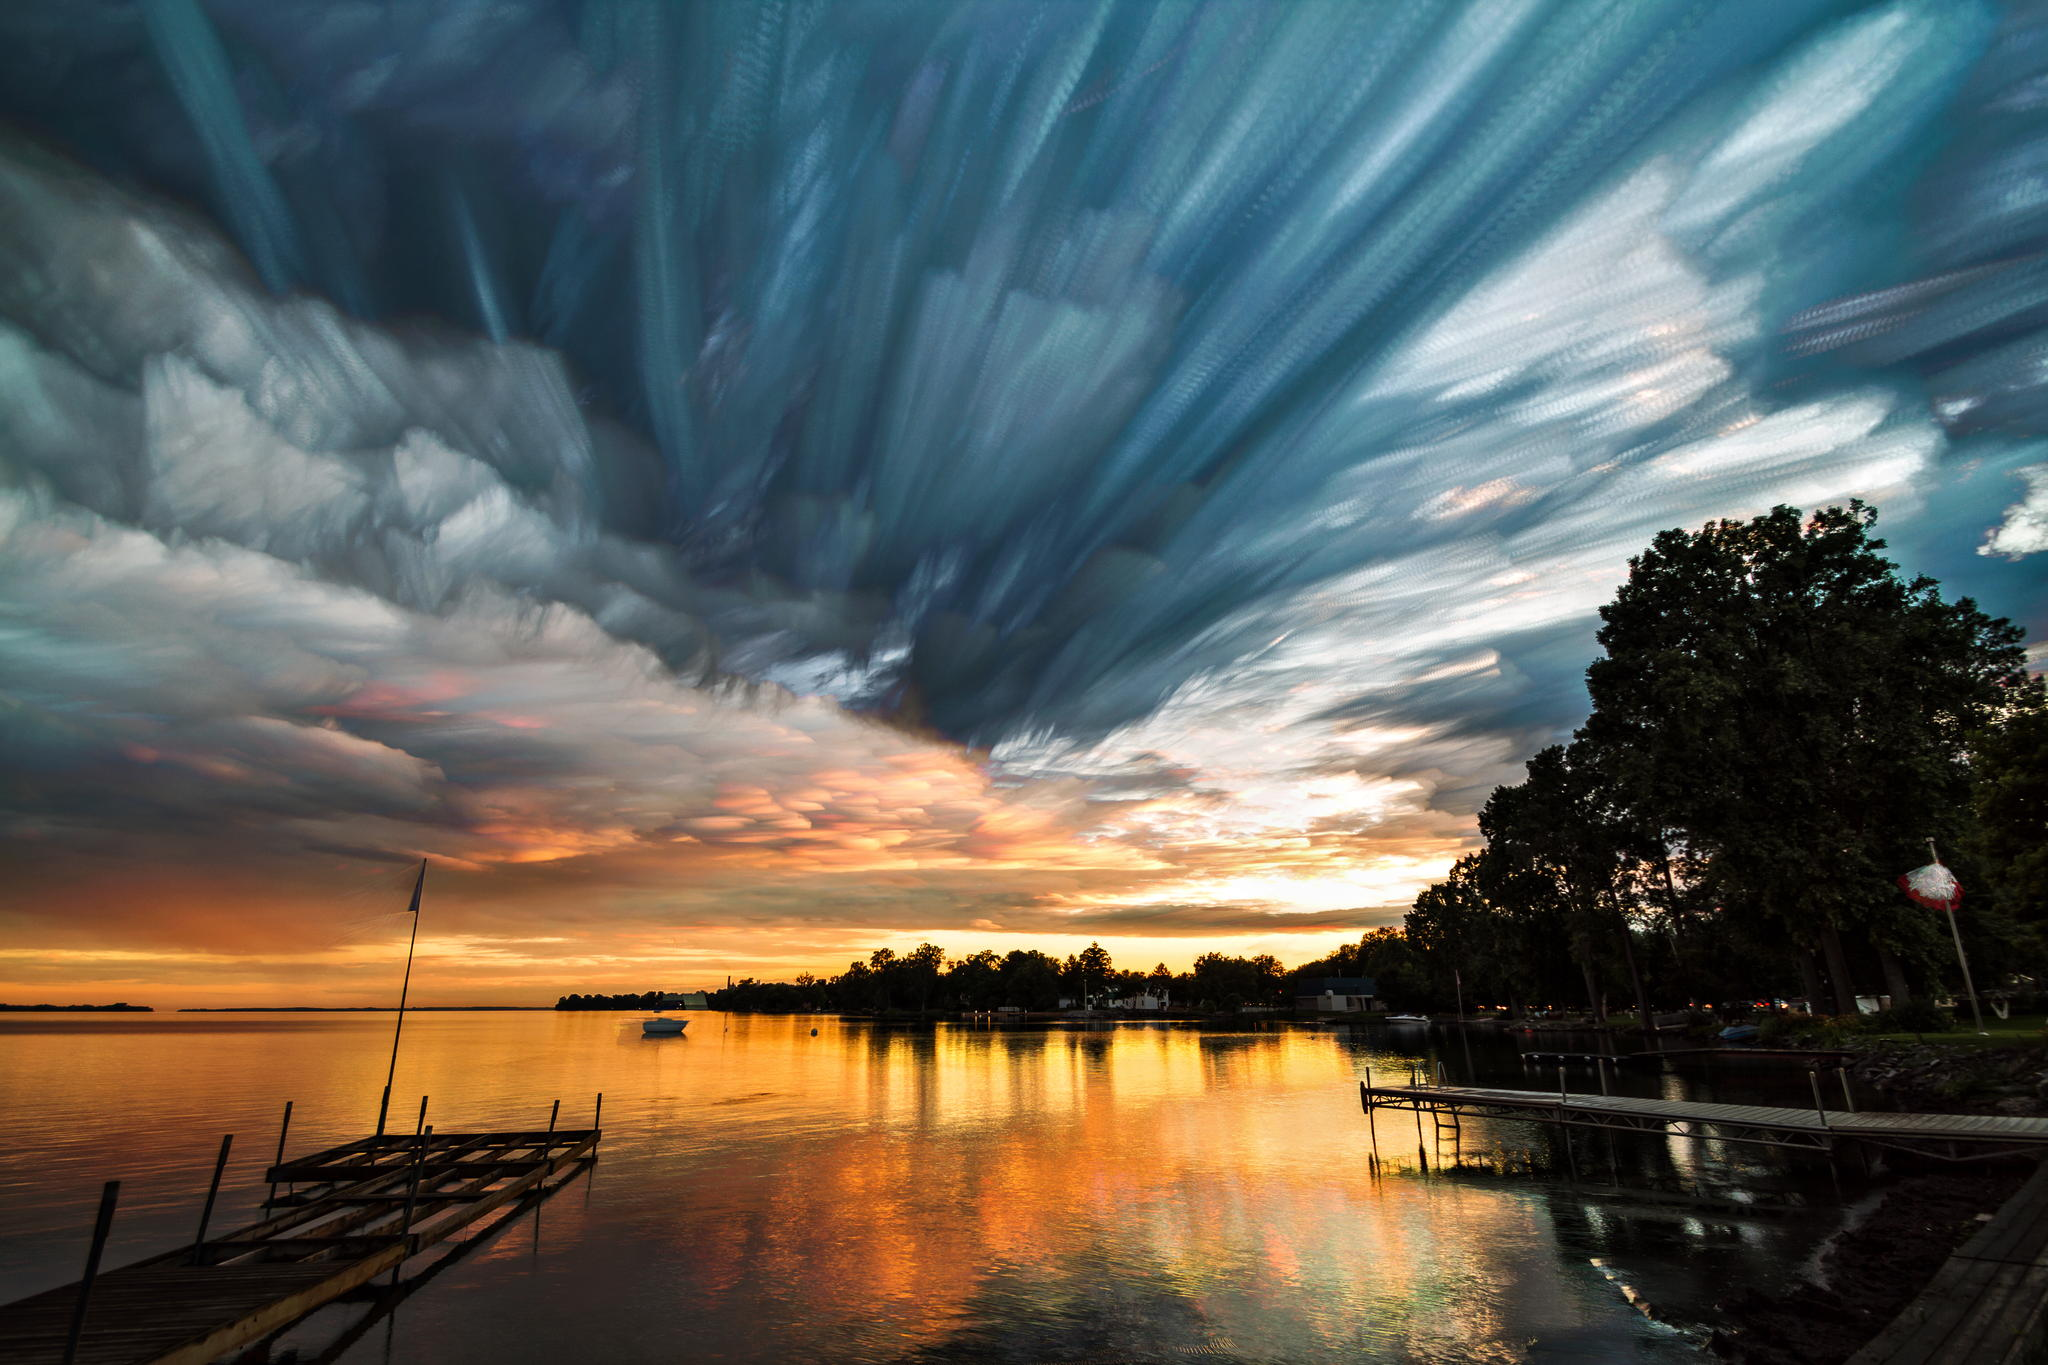 Photograph Isolated Storms by Matt Molloy on 500px